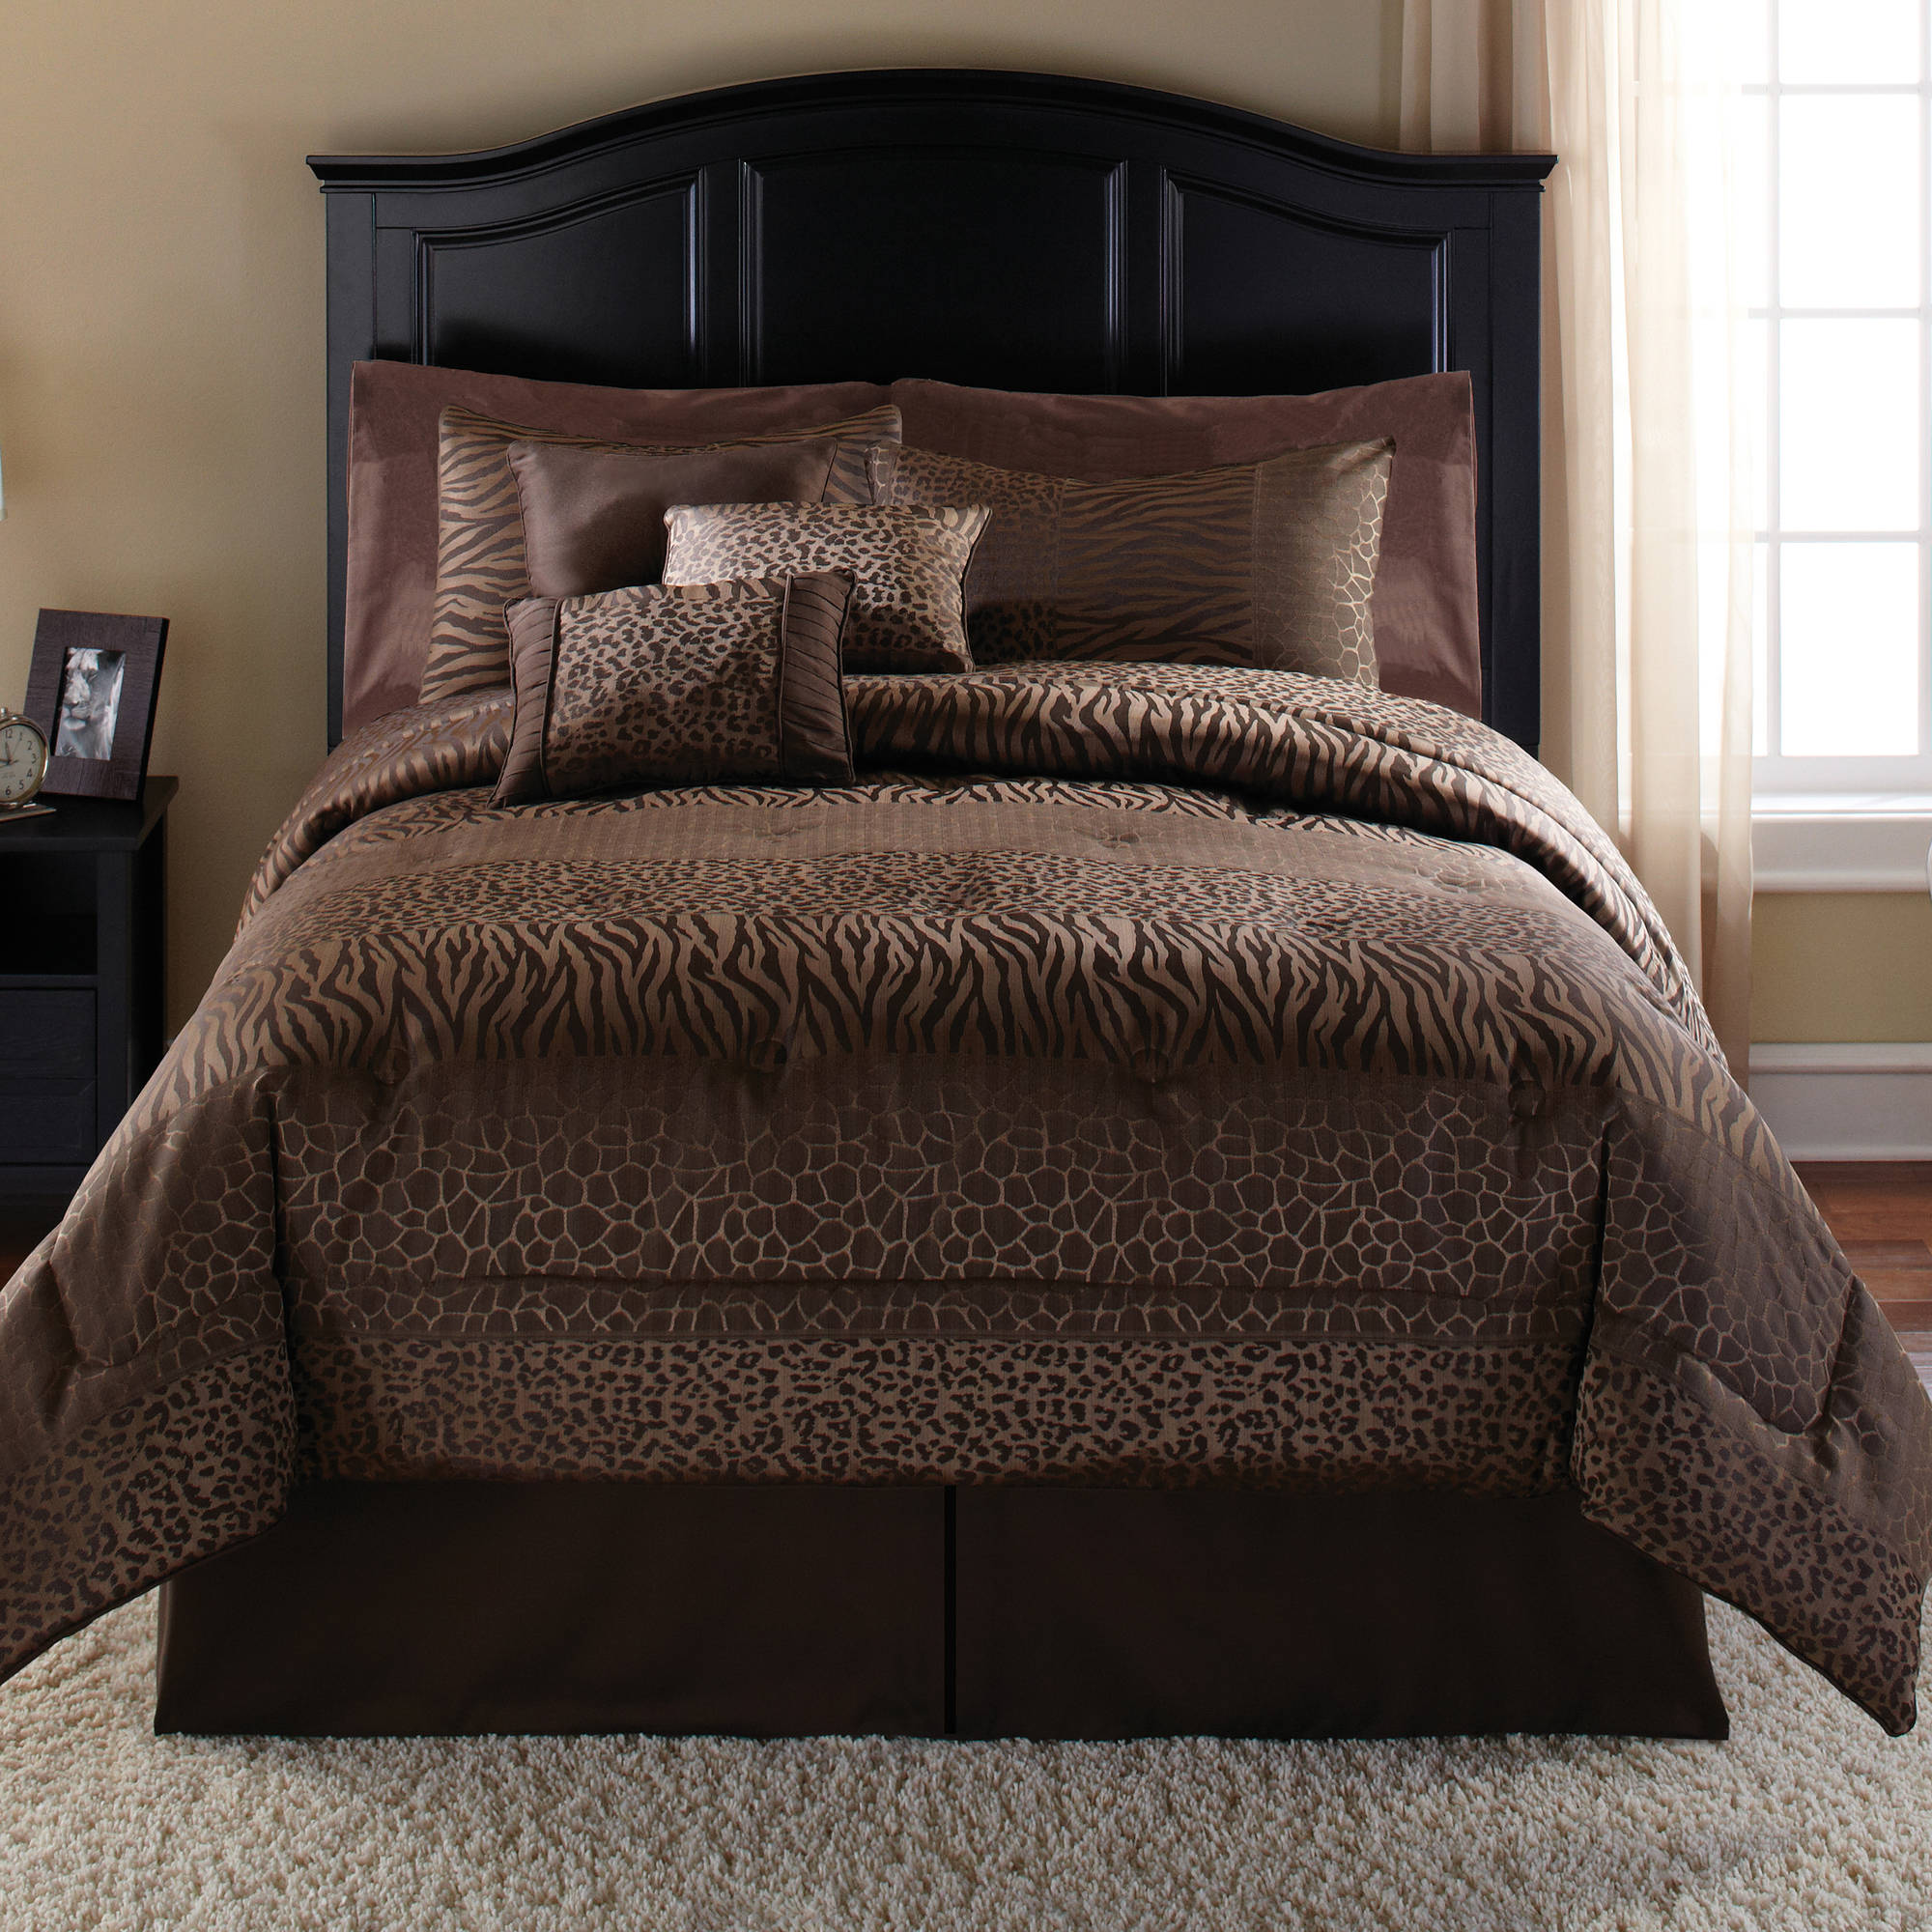 Walmart Queen Bed Sets | Queen Bedding Sets | Queen Size Bed Sets for Cheap